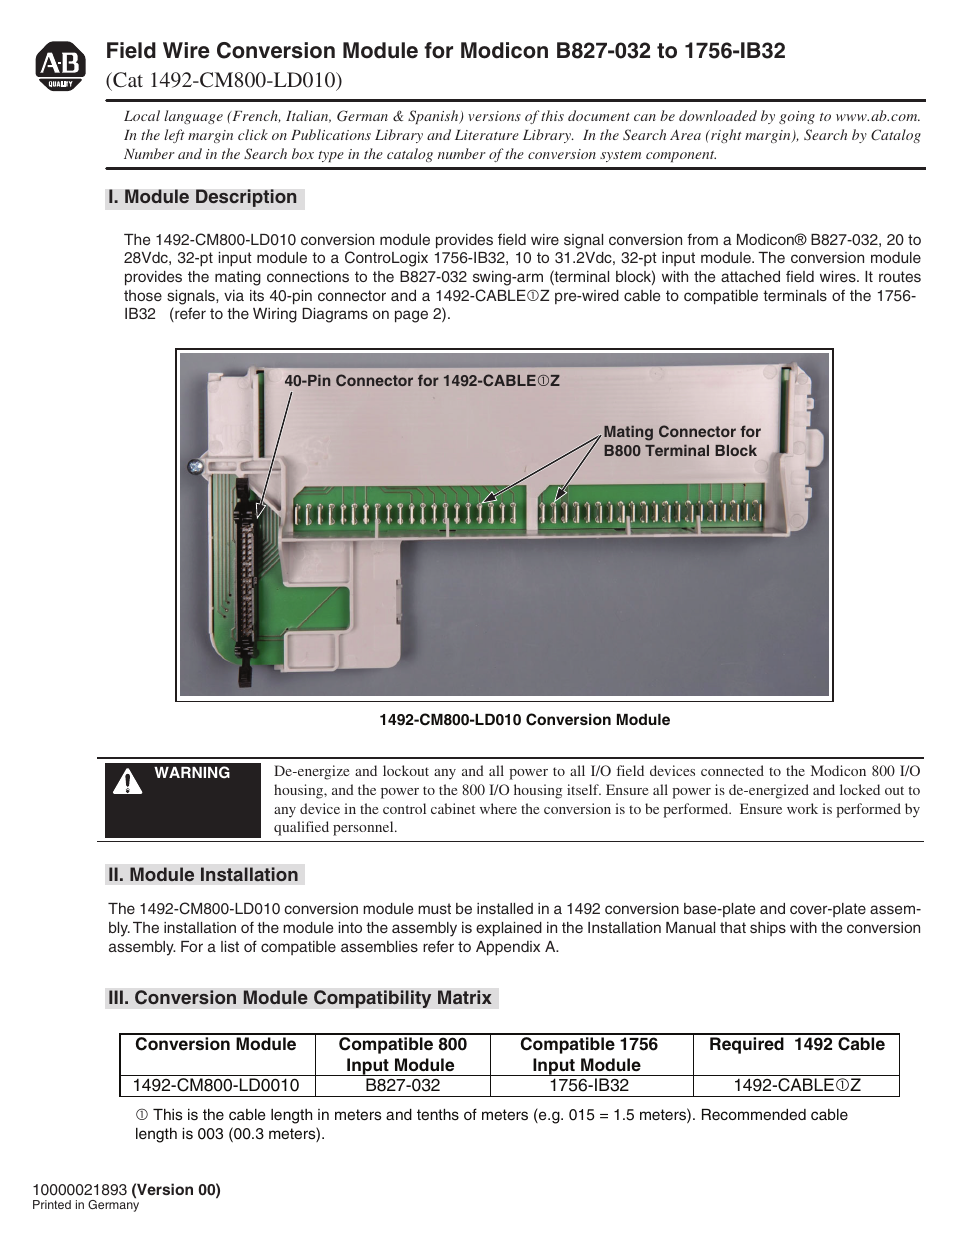 Rockwell Automation 1492-CM800-LD010 Field Wire Conv. Module for Modicon  B827-032 to 1756-IB32 User Manual | 4 pages